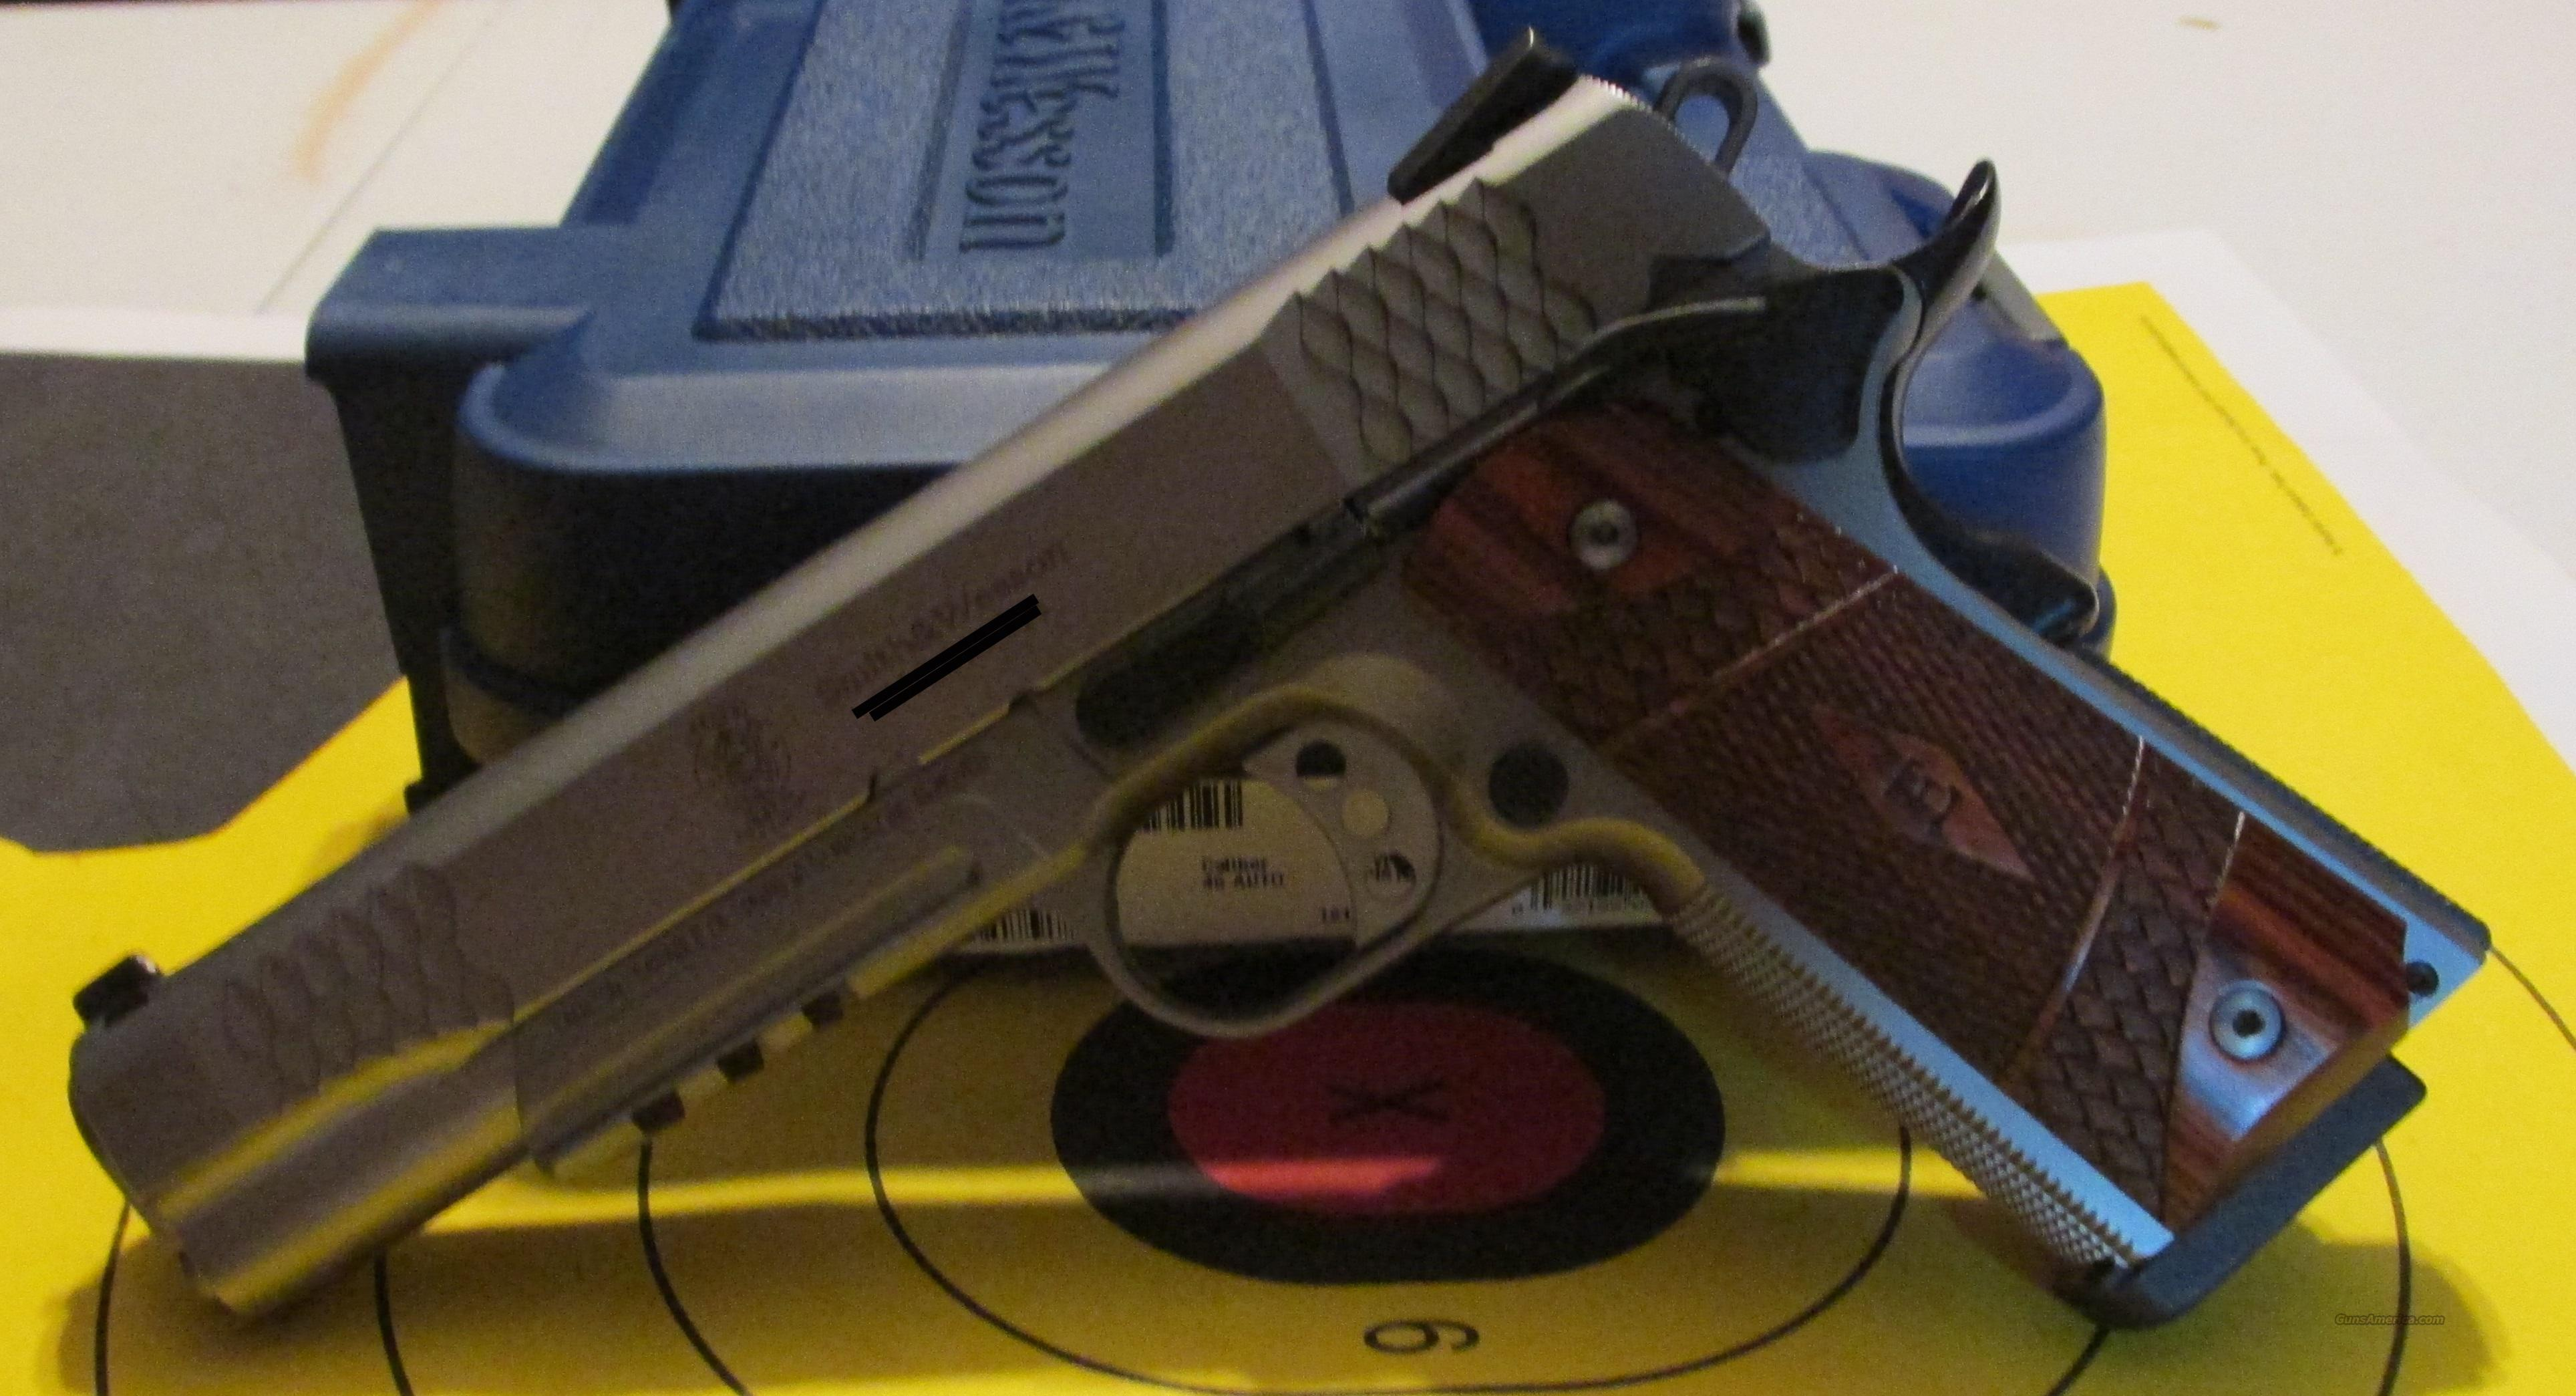 Smith & Wesson 1911 TA 45 ACP  Guns > Pistols > Smith & Wesson Pistols - Autos > Steel Frame